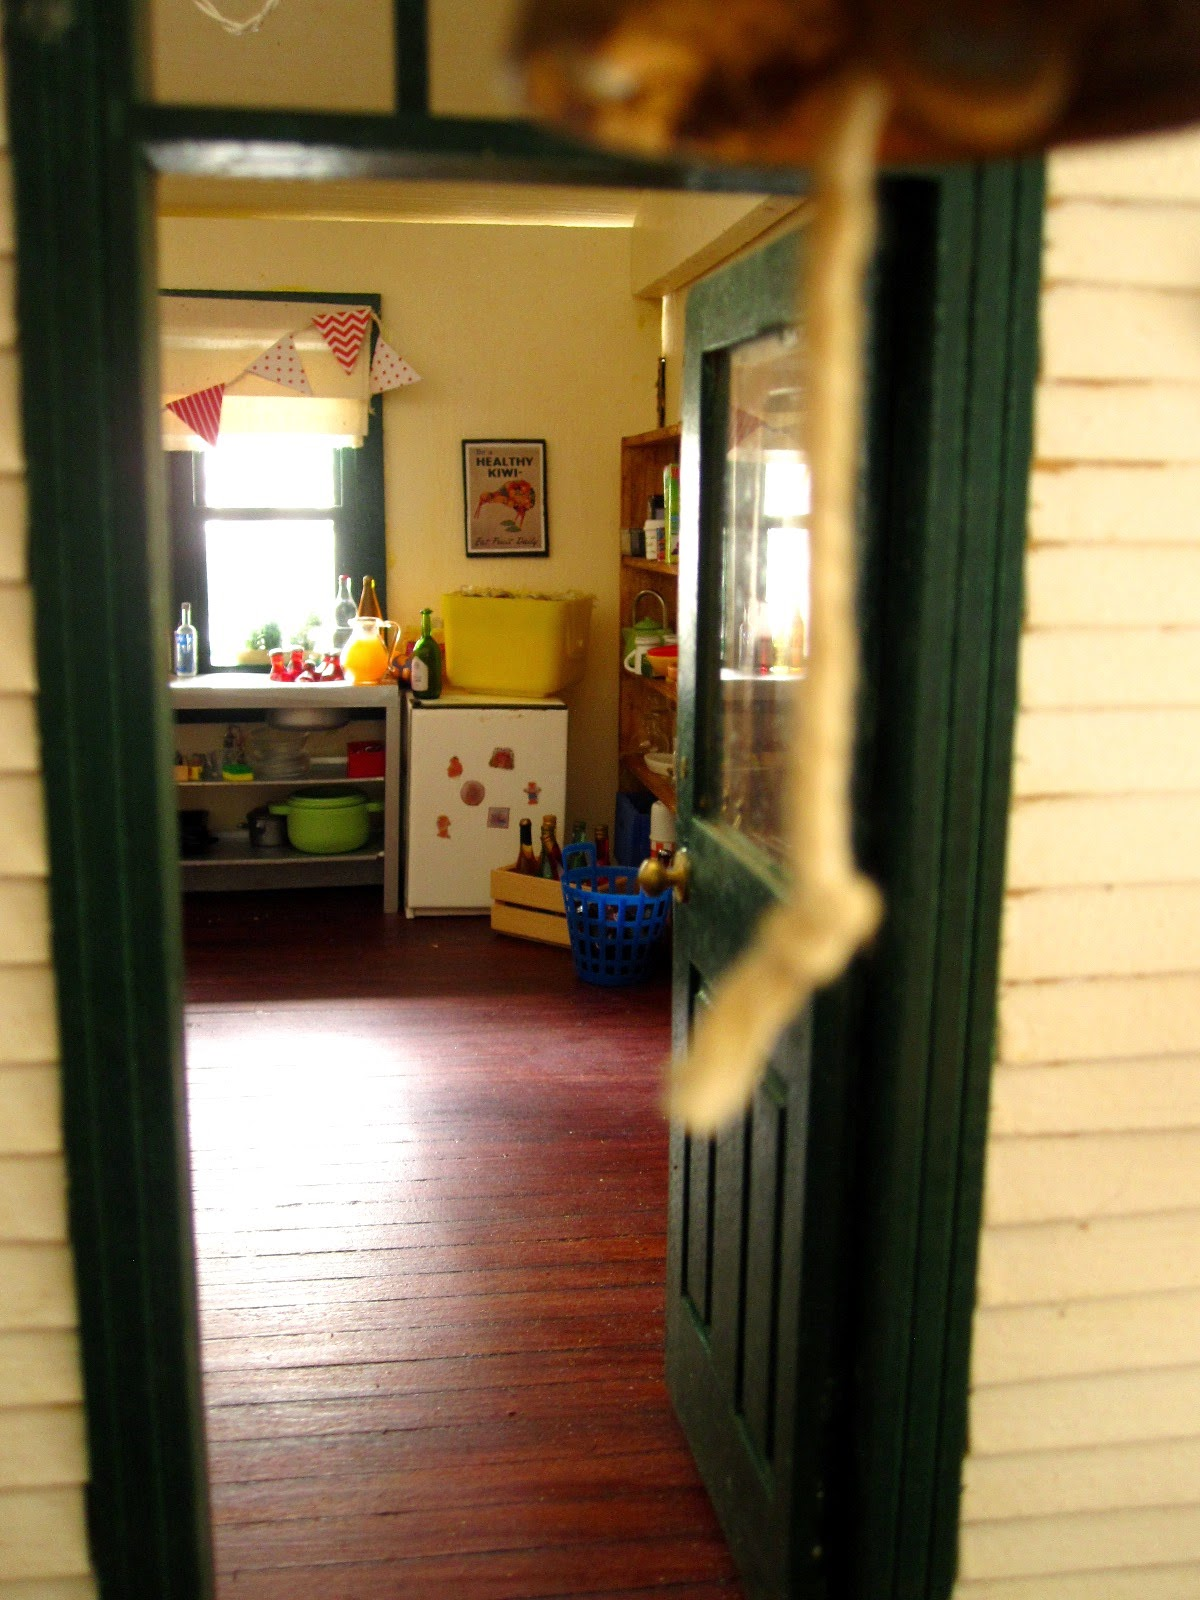 View through the front door of a miniature dolls' house school, showing the kitchen with a selection of drinks arranged.